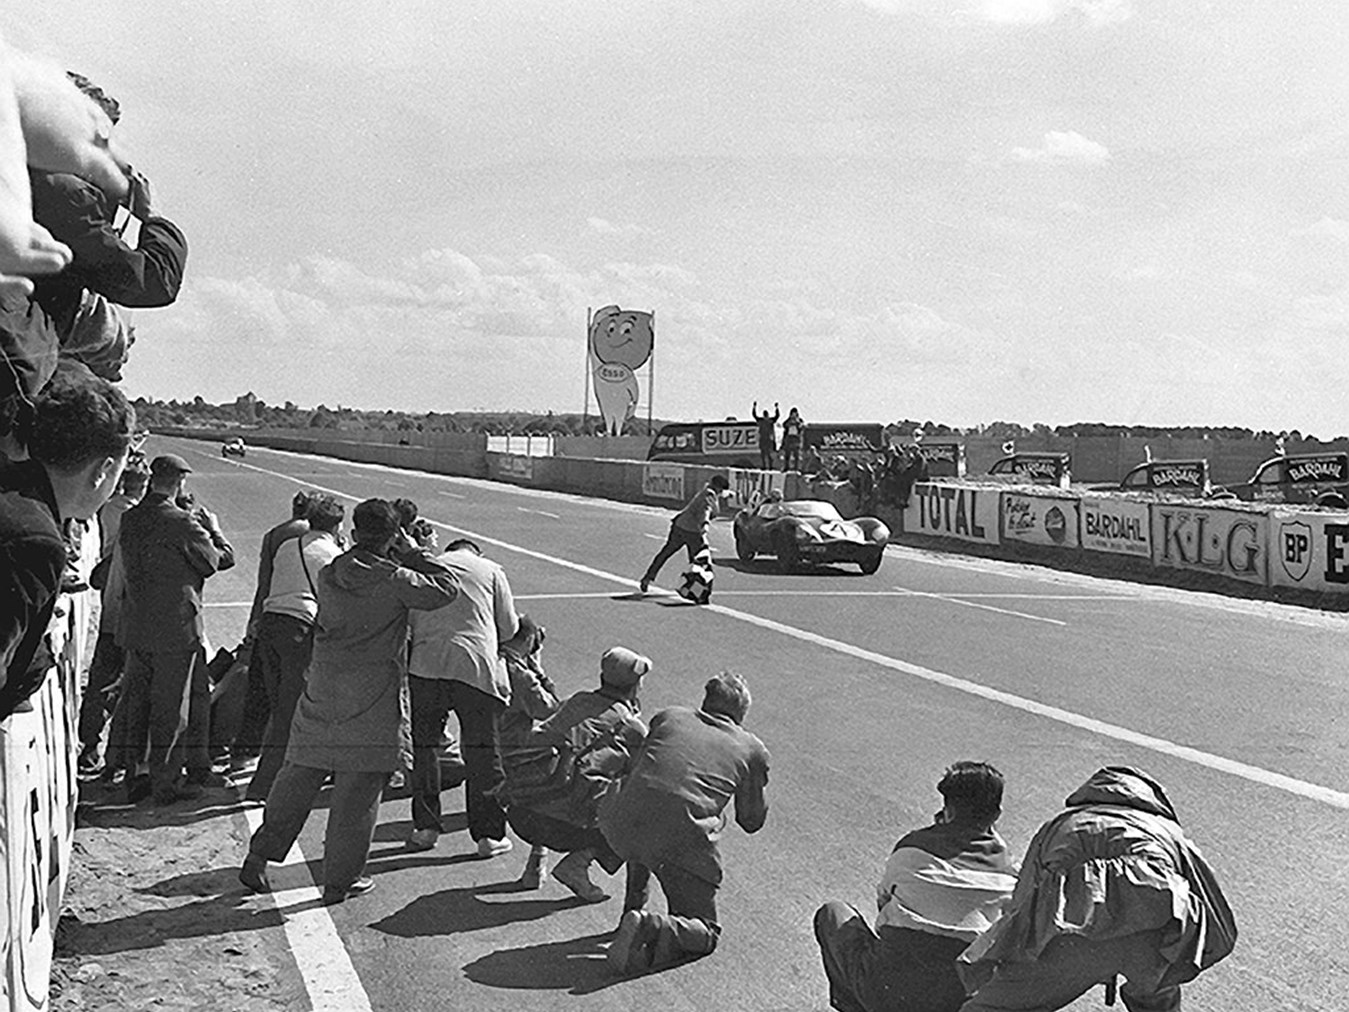 XKD 501 takes the checkered flag winning the 1956 Le Mans. (Picture courtesy the Klemantaski Collection).